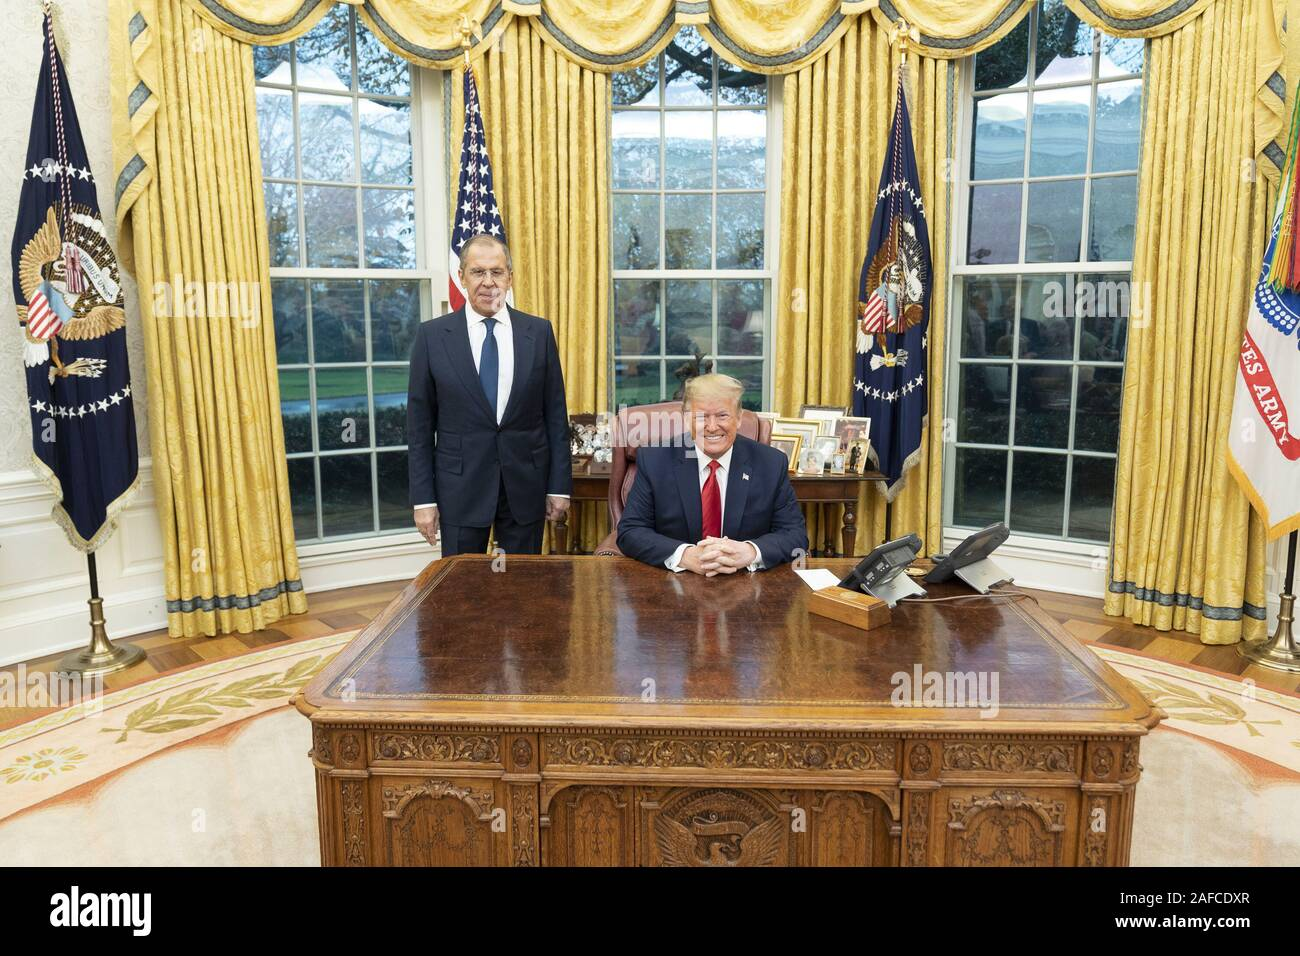 Washington, United States Of America. 10th Dec, 2019. President Donald J. Trump poses for a photo with Russian Foreign Minister Sergey Lavrov Tuesday, Dec. 10, 2019, in the Oval Office of the White House. People: President Donald J. Trump, Russian Foreign Minister Sergey Lavrov Credit: Storms Media Group/Alamy Live News Stock Photo